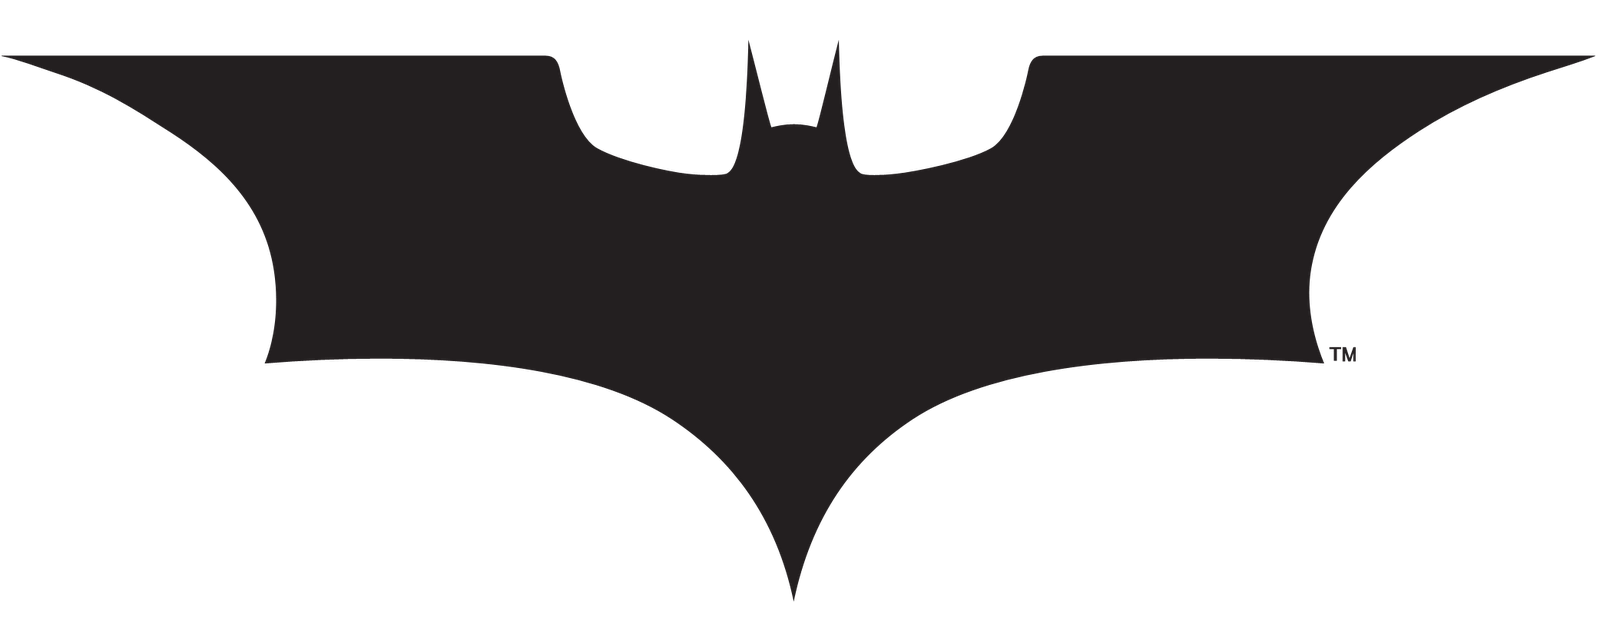 Batman Dark Knight Logo Png Baking Pinterest Knight Logo